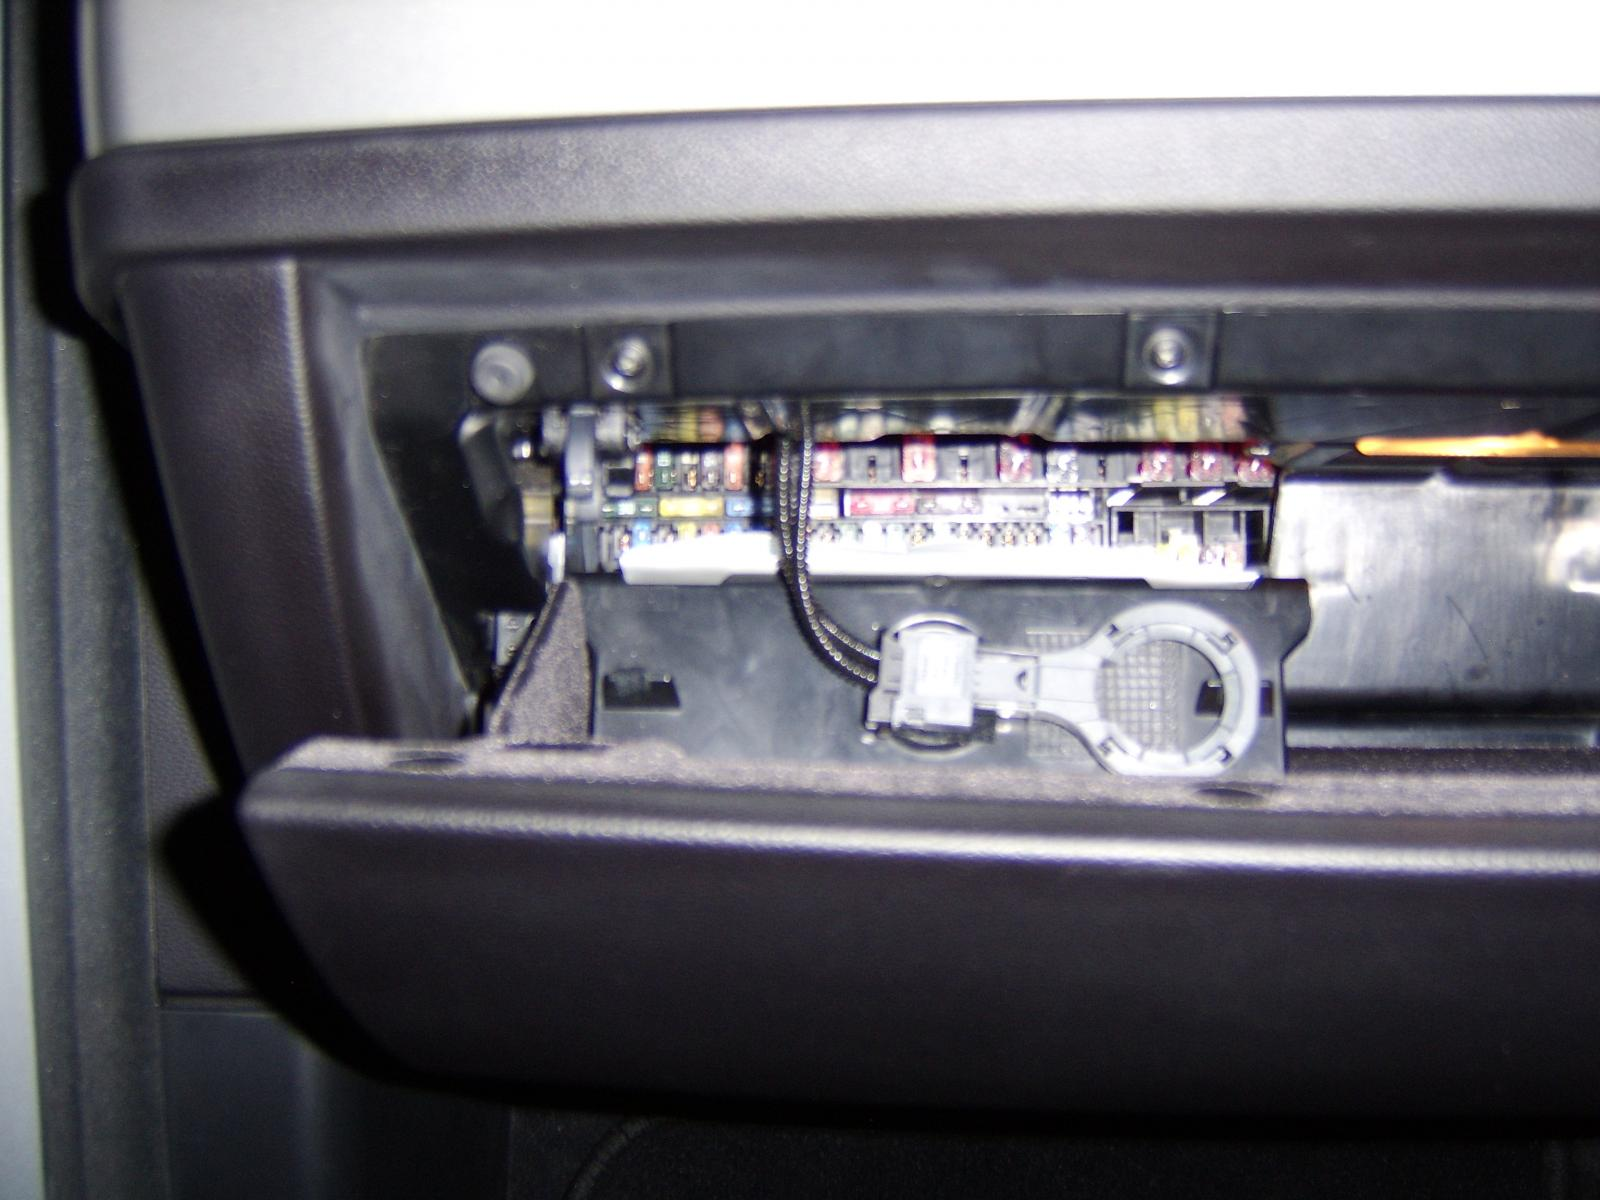 fuse box location 2001 bmw x5    location    of    fuse       box    for cigarett lighter bimmerfest     location    of    fuse       box    for cigarett lighter bimmerfest